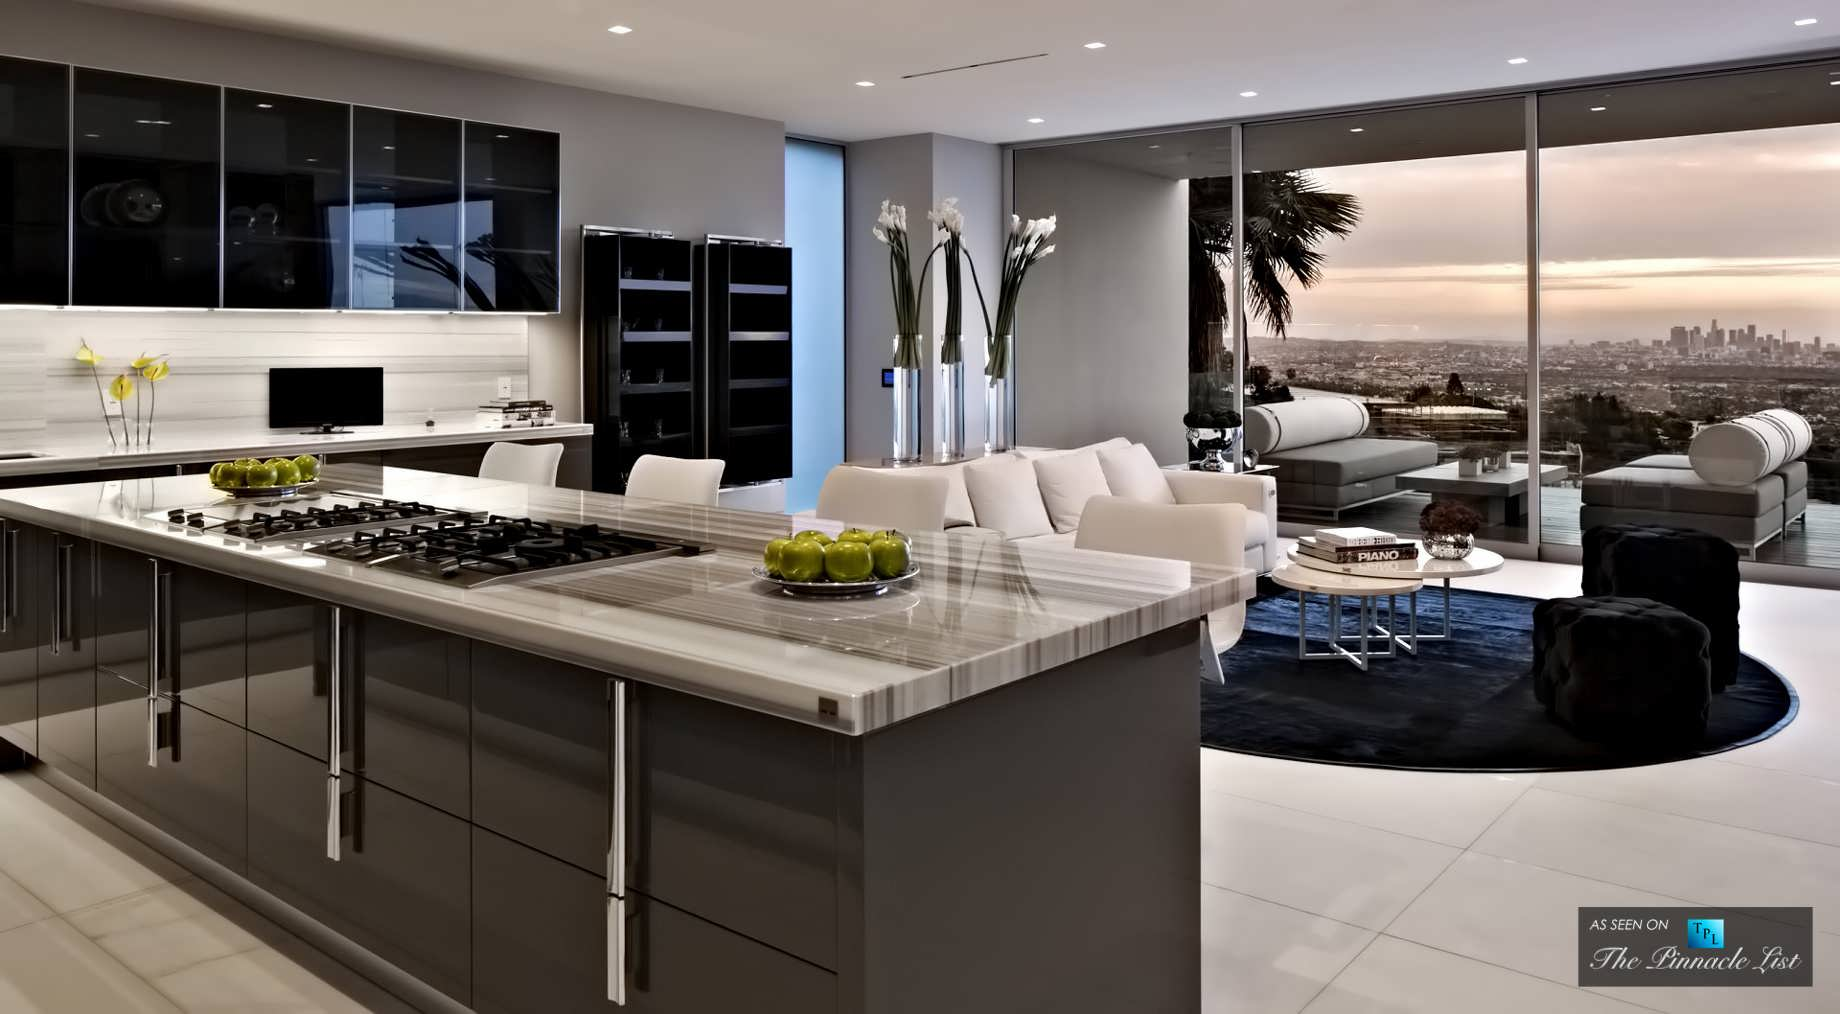 Designing The Luxury Kitchen of Tomorrow Today  The